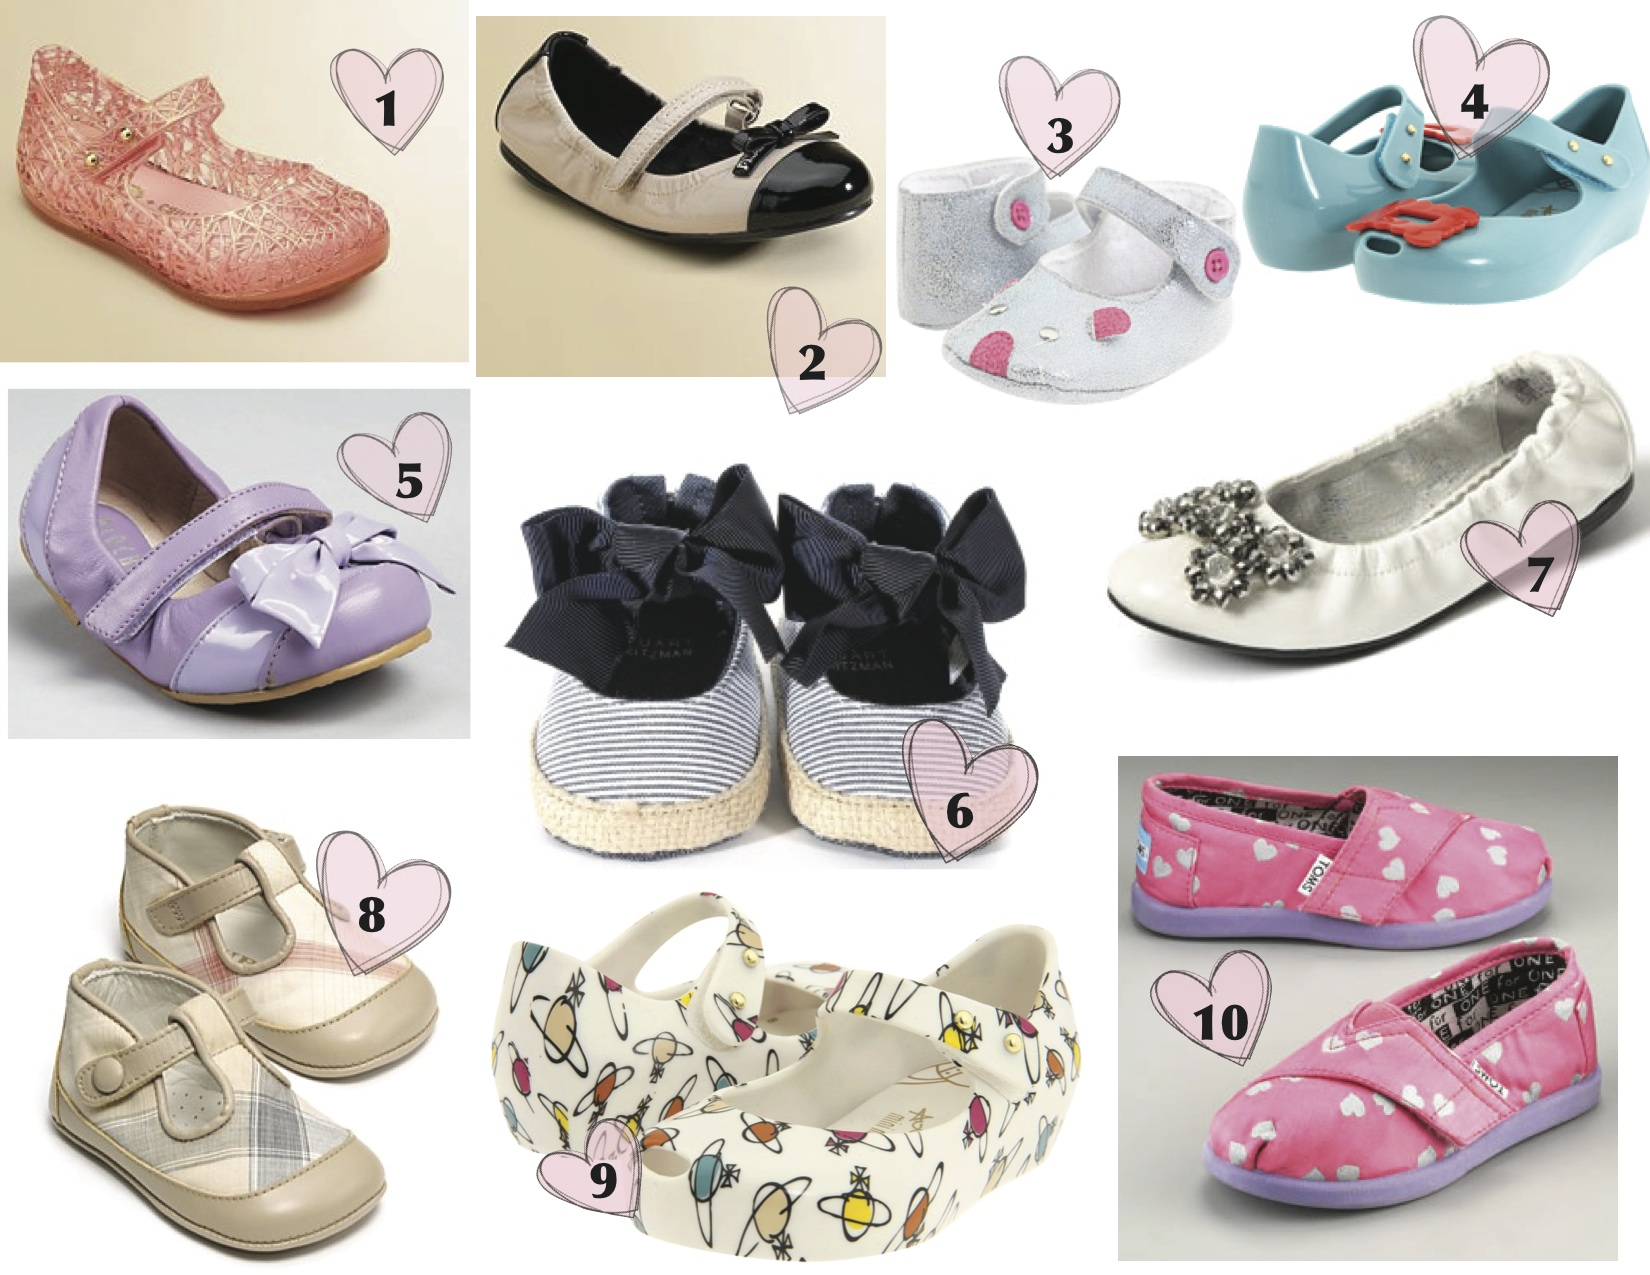 bf49e8e6b1 ADORABLE baby girl shoes! – Kids Are From Pluto - A Mother's Guide ...